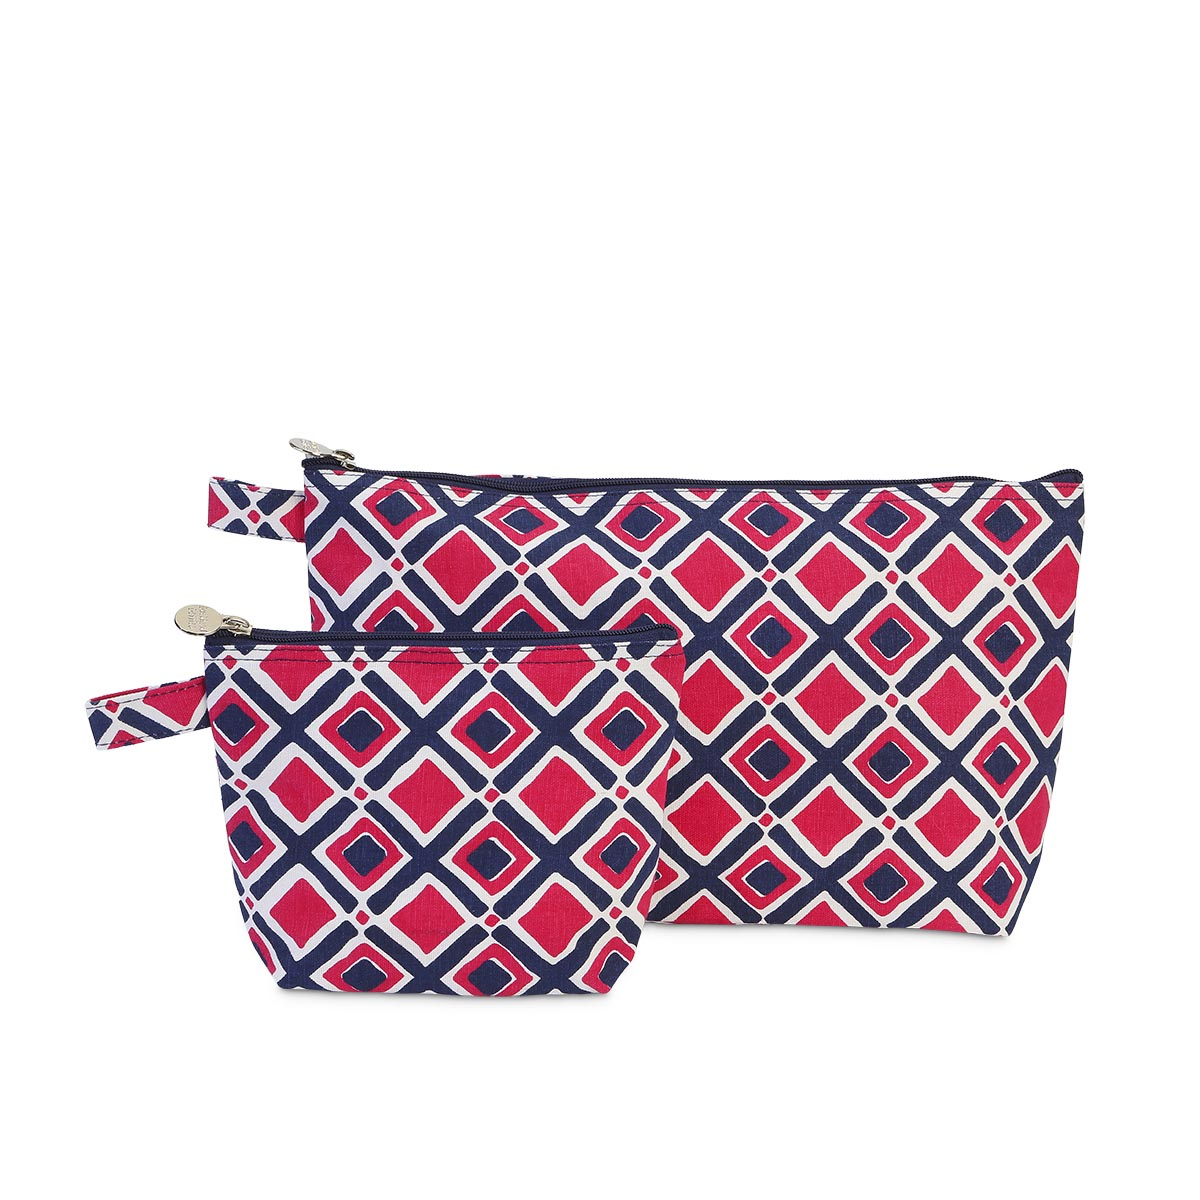 times square navy/pink zipper bag set